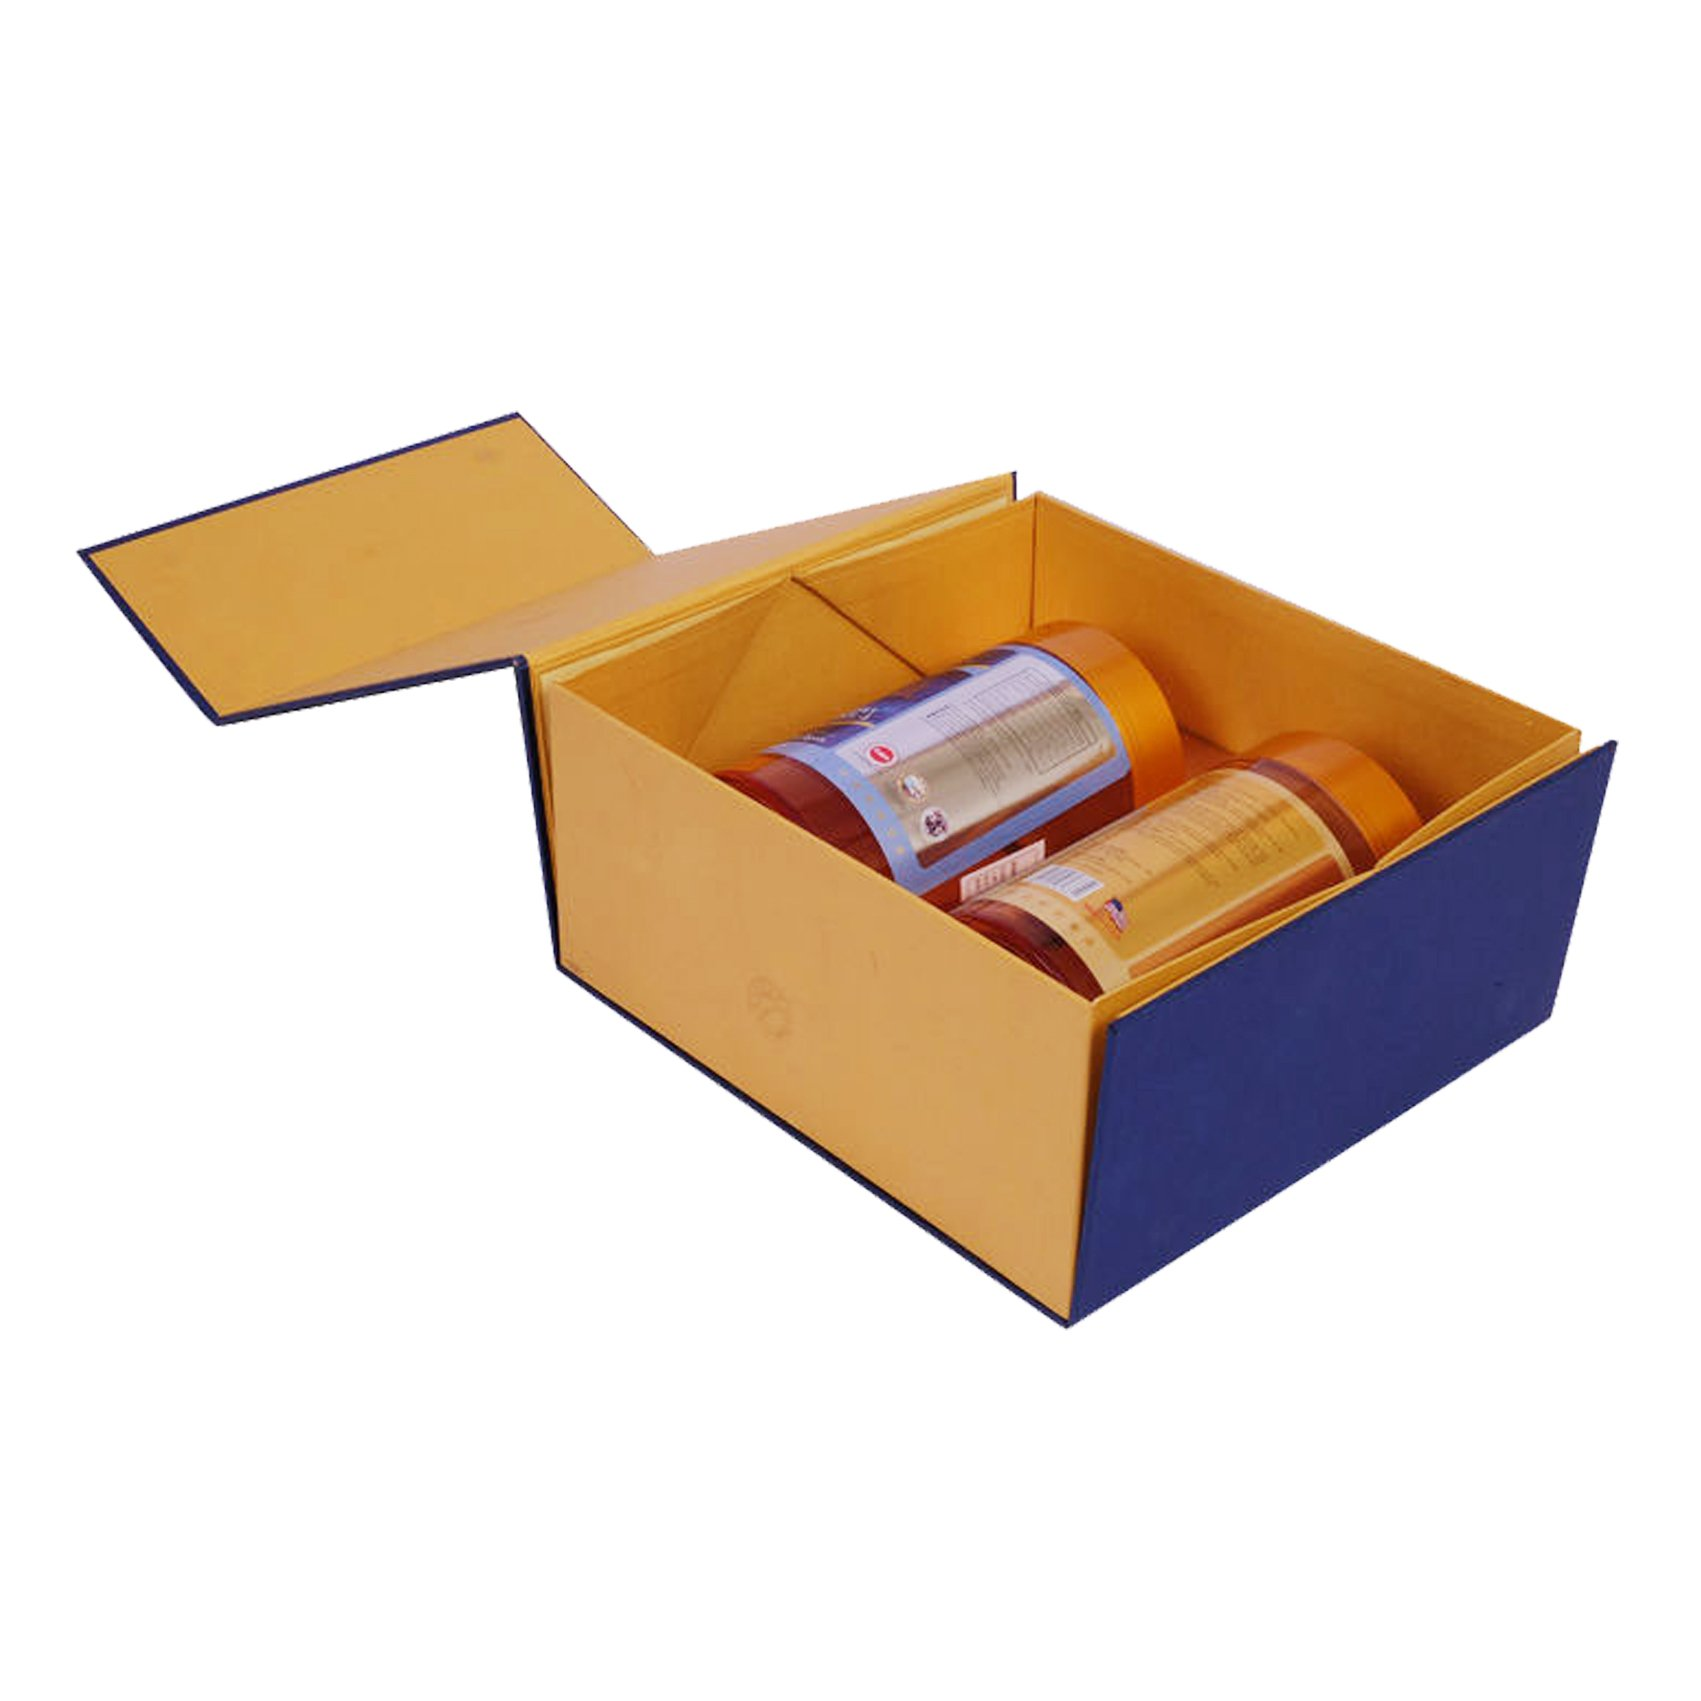 Foldable Tea Packaging Box with Magnet Closure